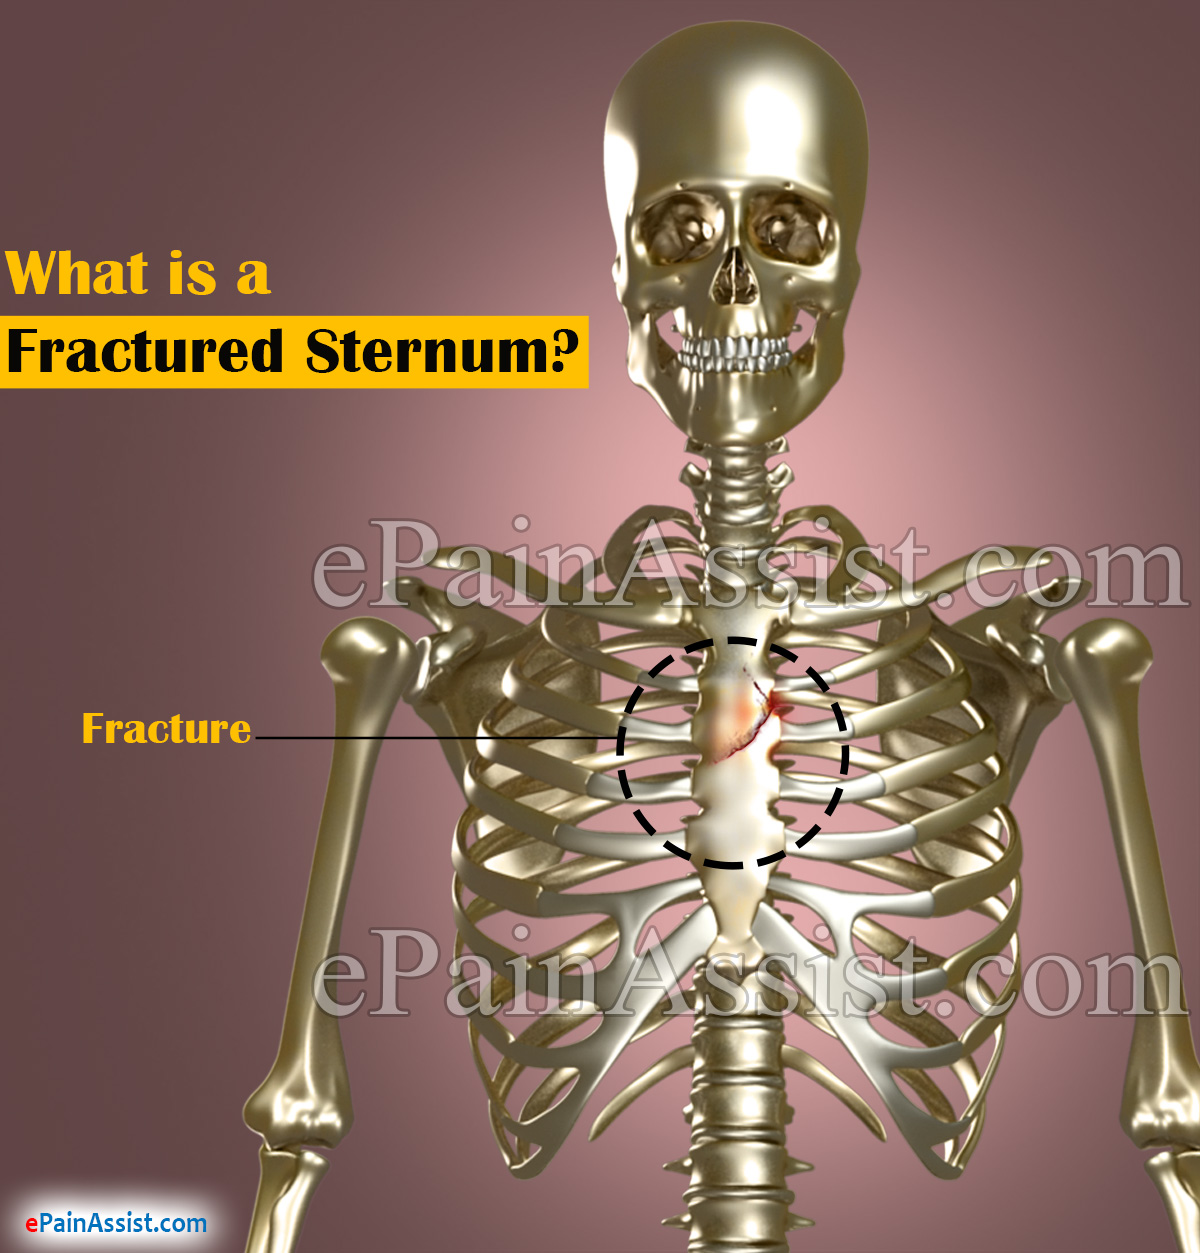 What is a Fractured Sternum